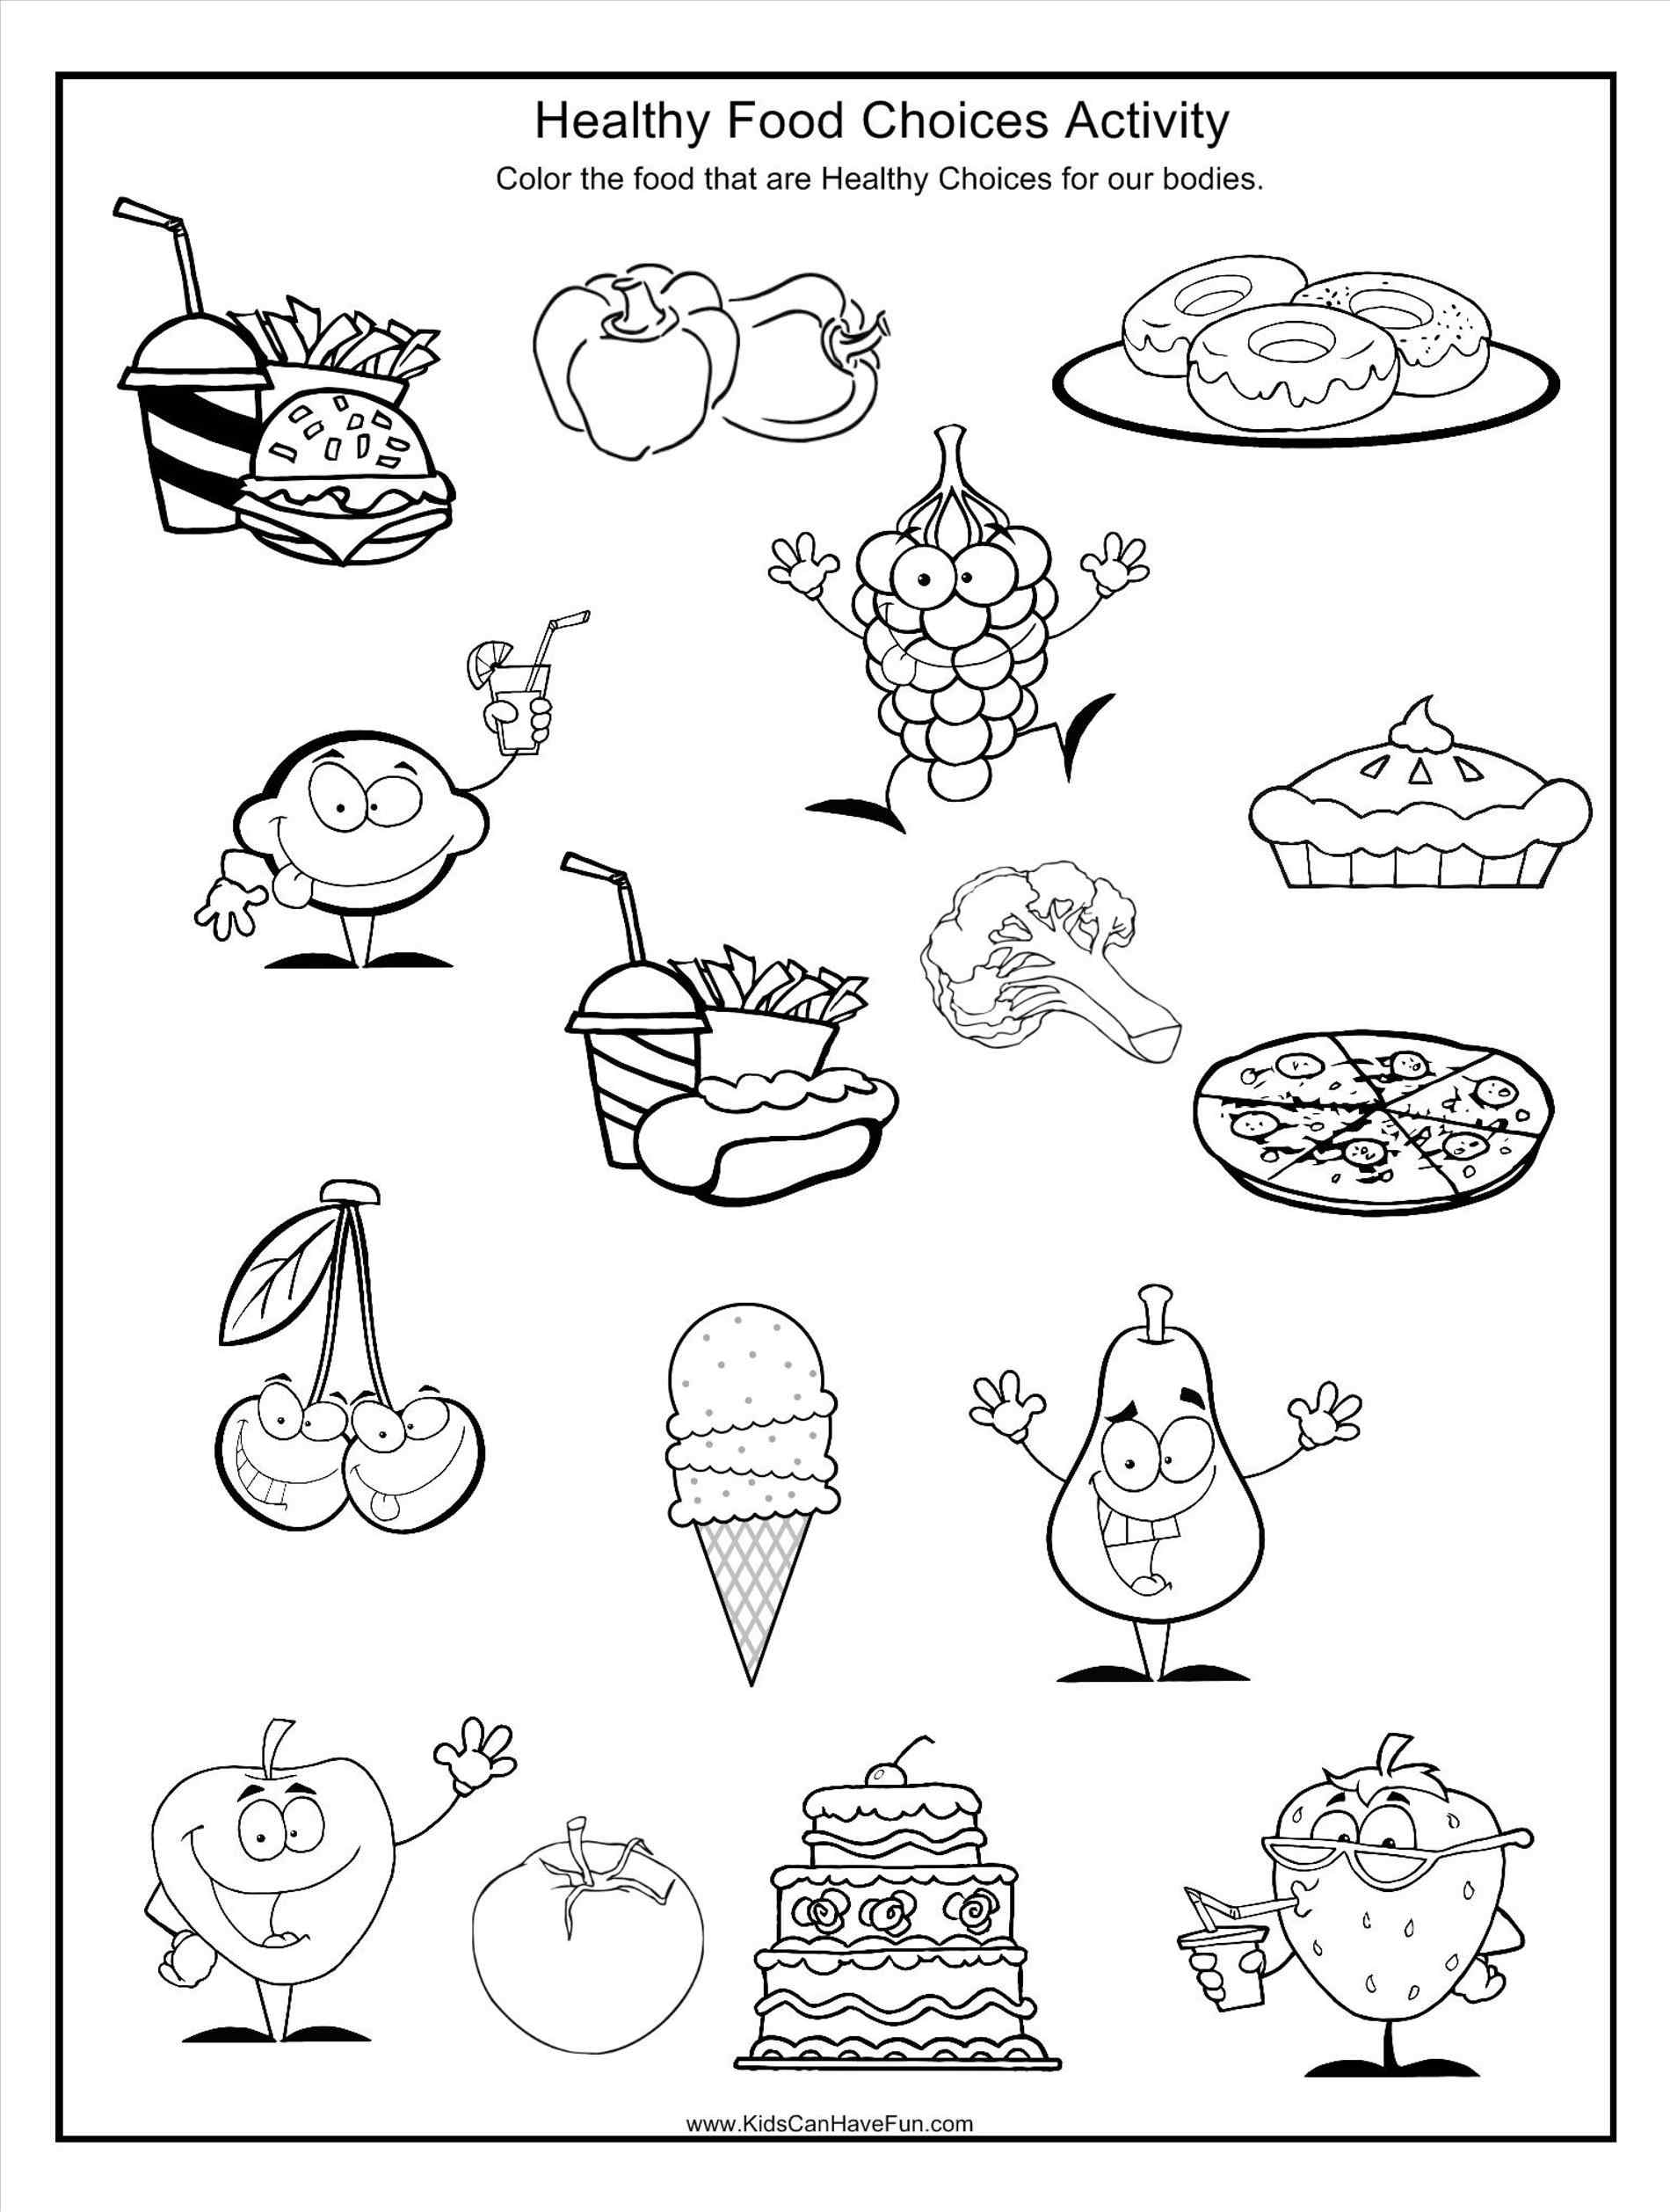 Grains Coloring Pages At Getcolorings